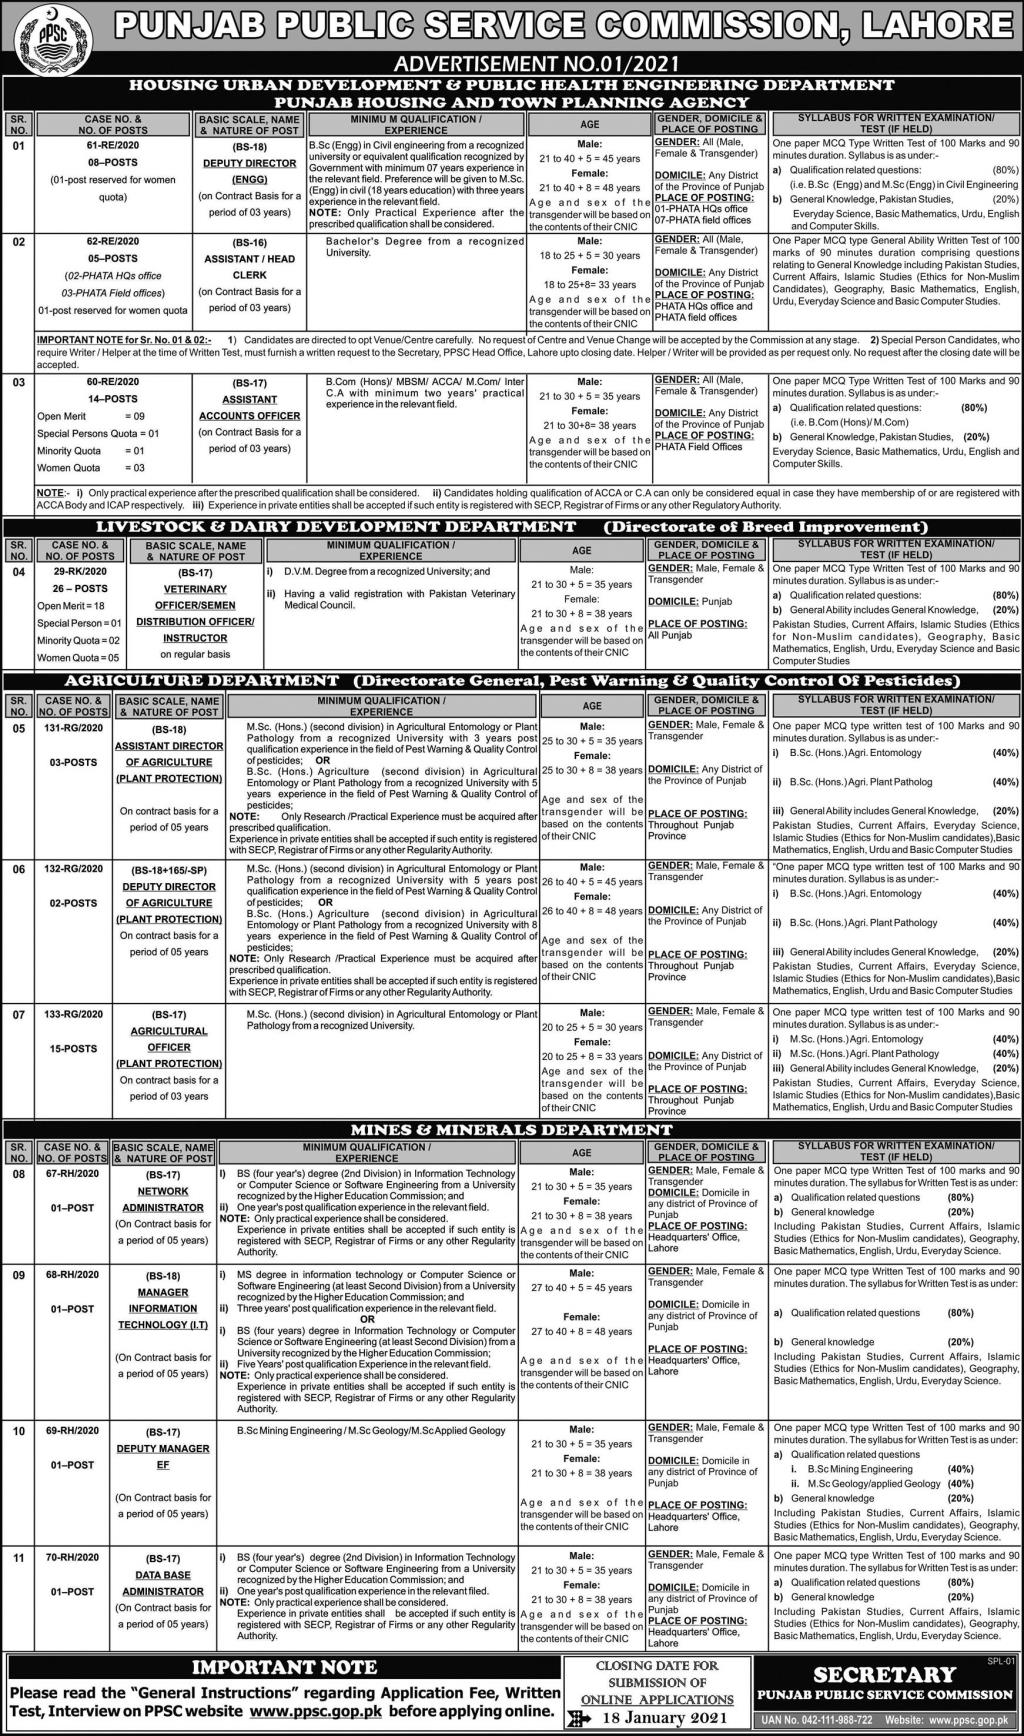 PPSC Jobs 2021 - Latest Punjab Govt Jobs 2021 - Punjab Public Service Commission Jobs 2021 - Download Job Application Form - www.ppsc.gop.pk